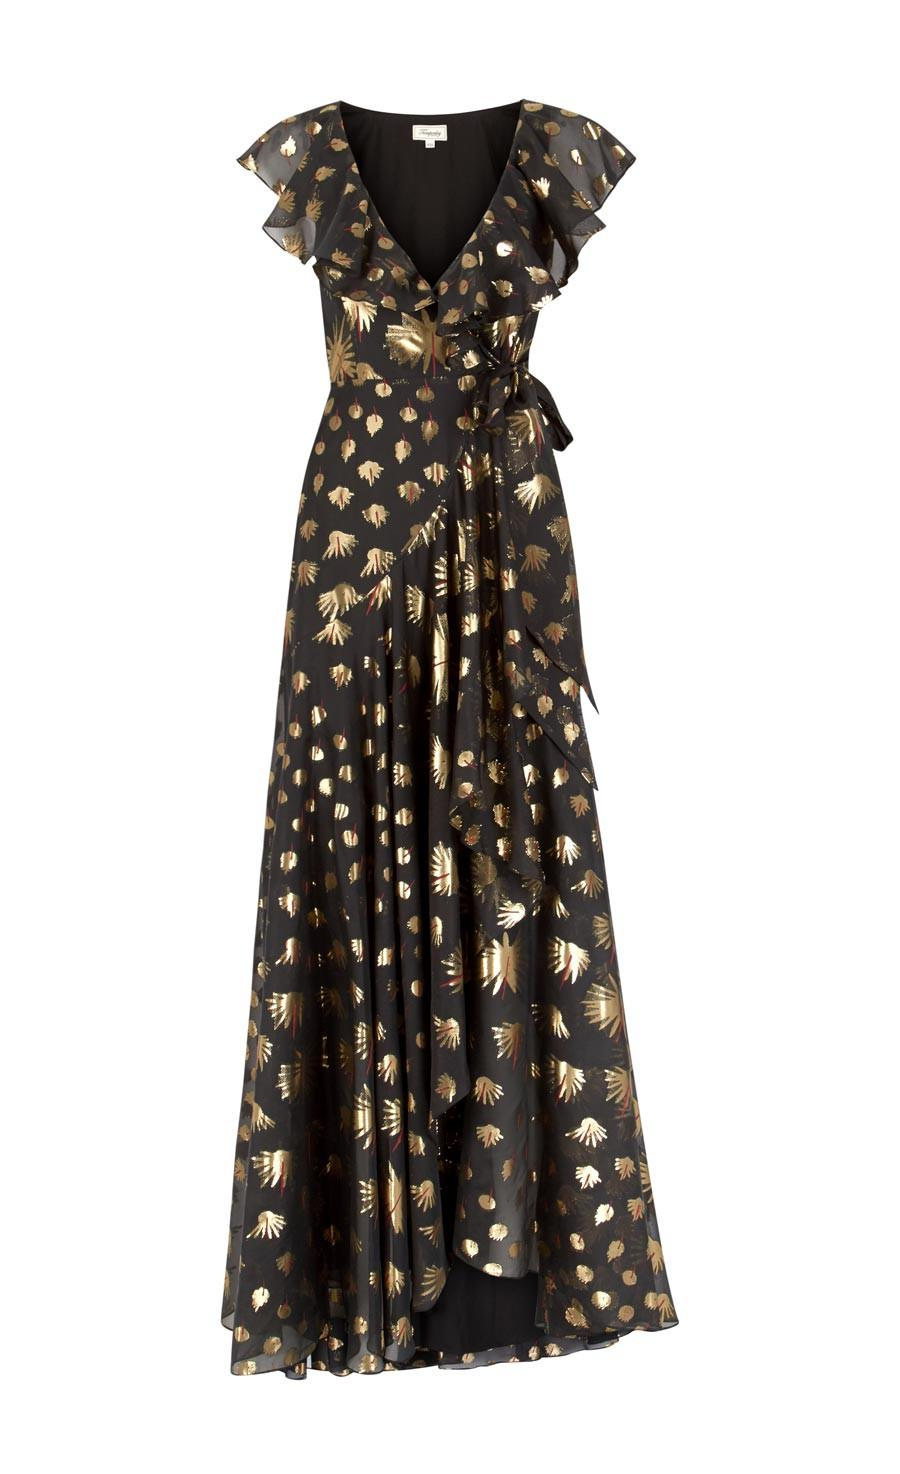 sequinned tulle tiered dress - Black Temperley London Outlet Cheap Prices Sale Low Cost Huge Surprise Cheap Price Free Shipping Hot Sale Clearance Sale G49xw